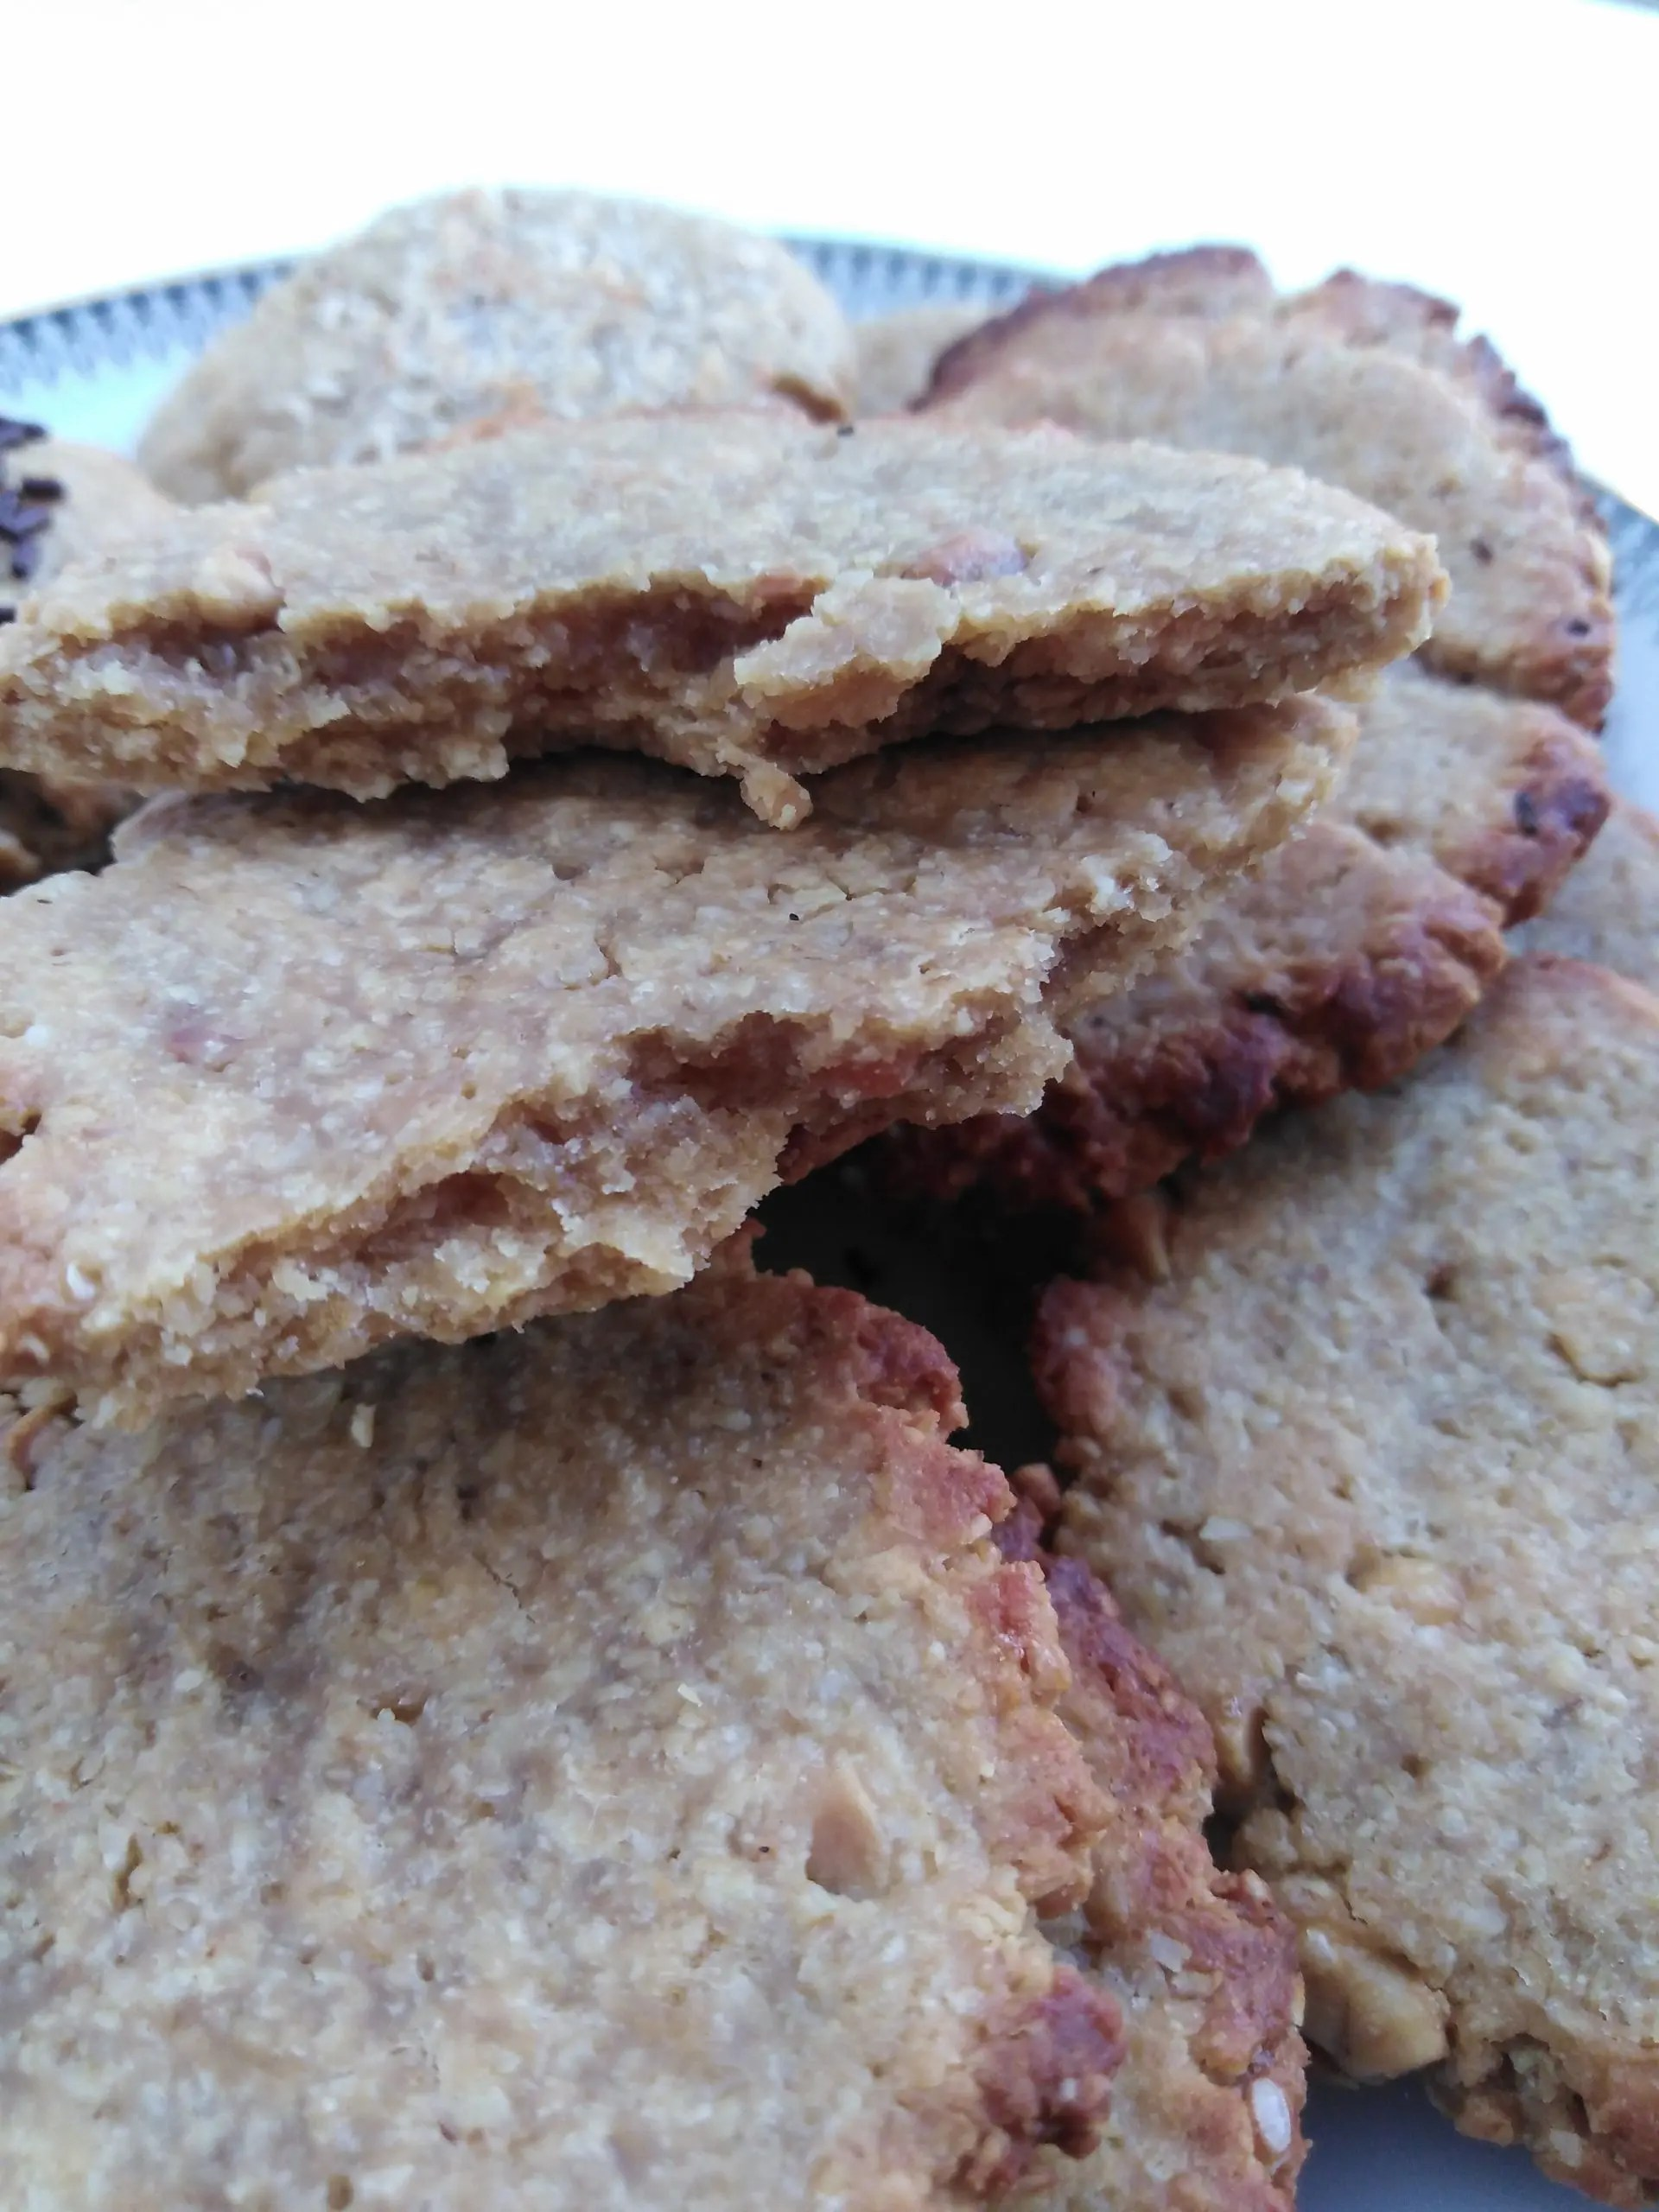 Close up of plate with Vegan Peanut Butter Oat Cookies